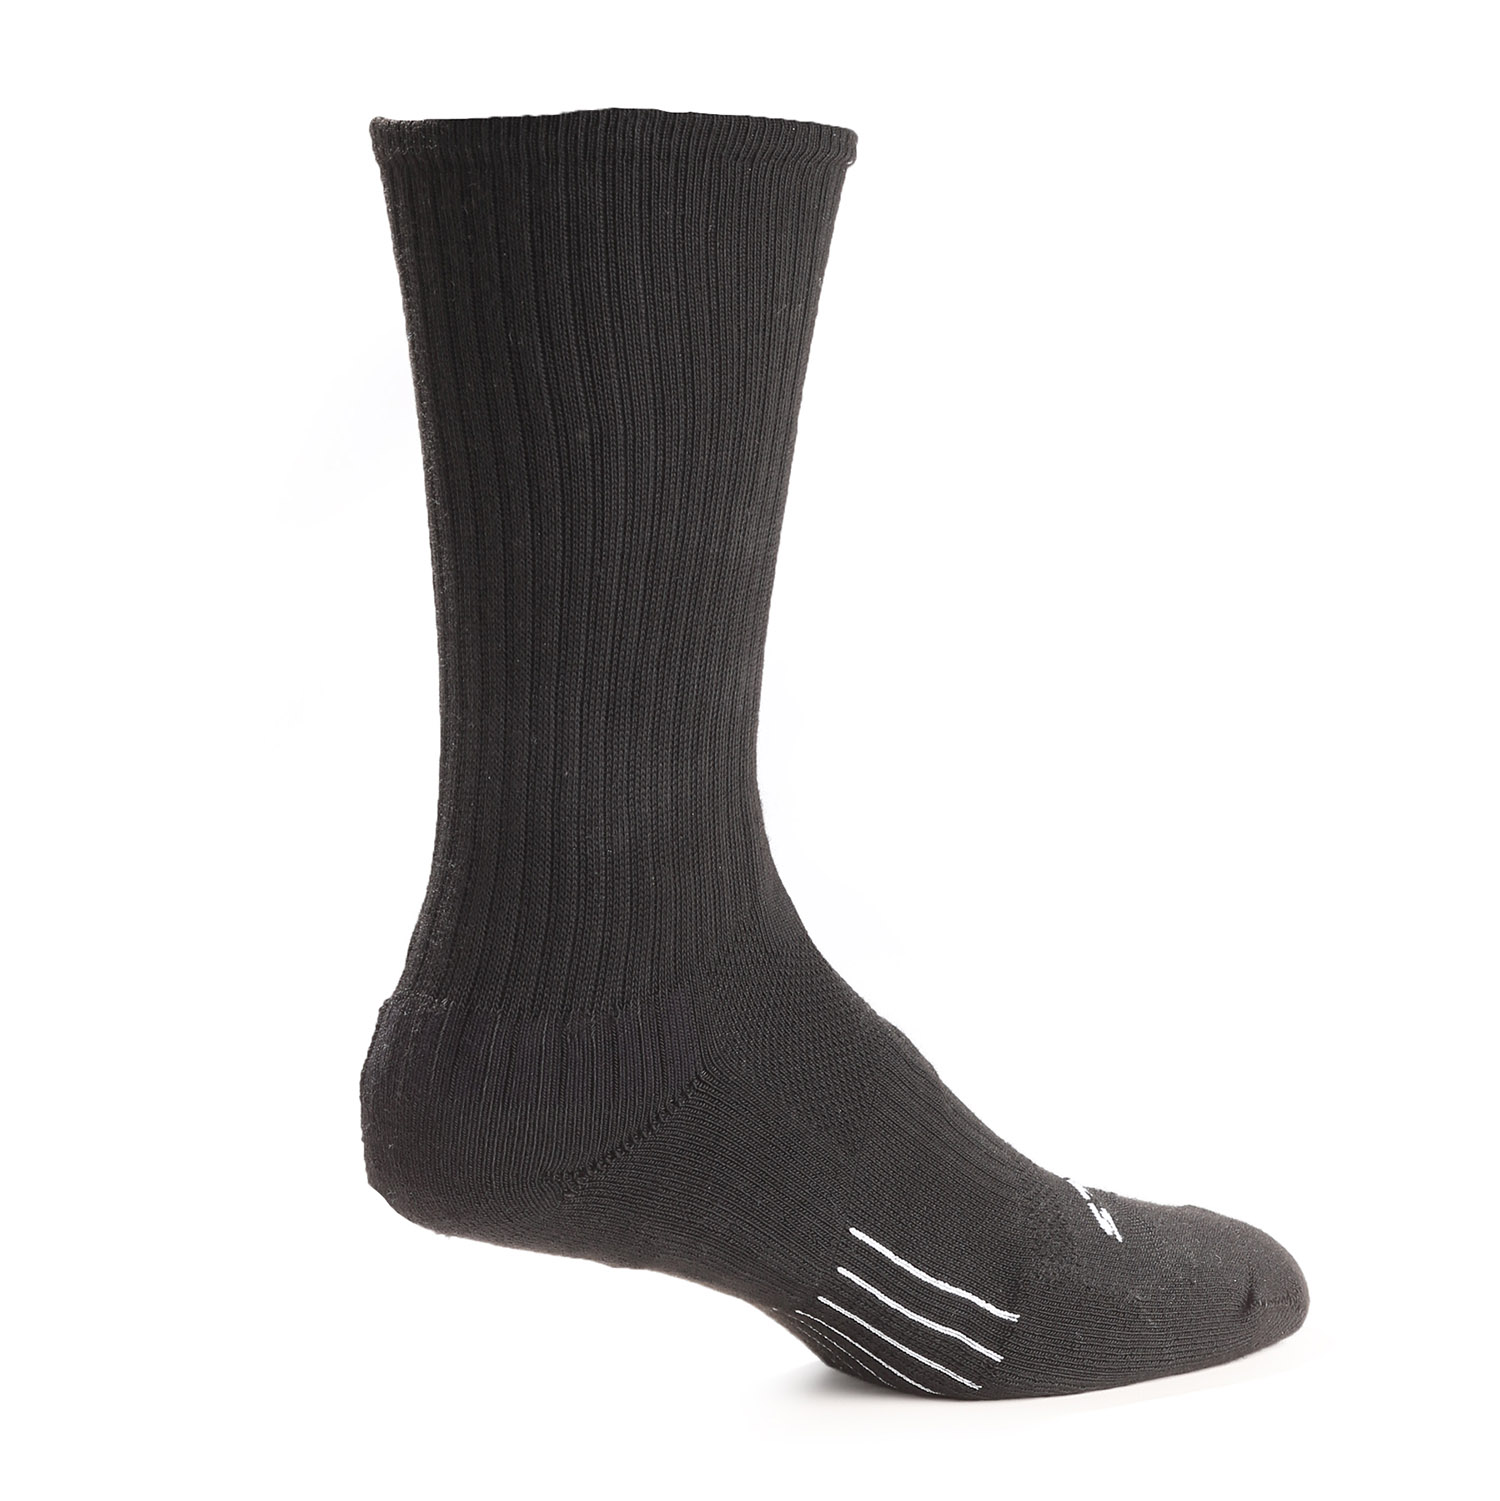 Galls Unisex Athletic Crew Sock (2 Pack)